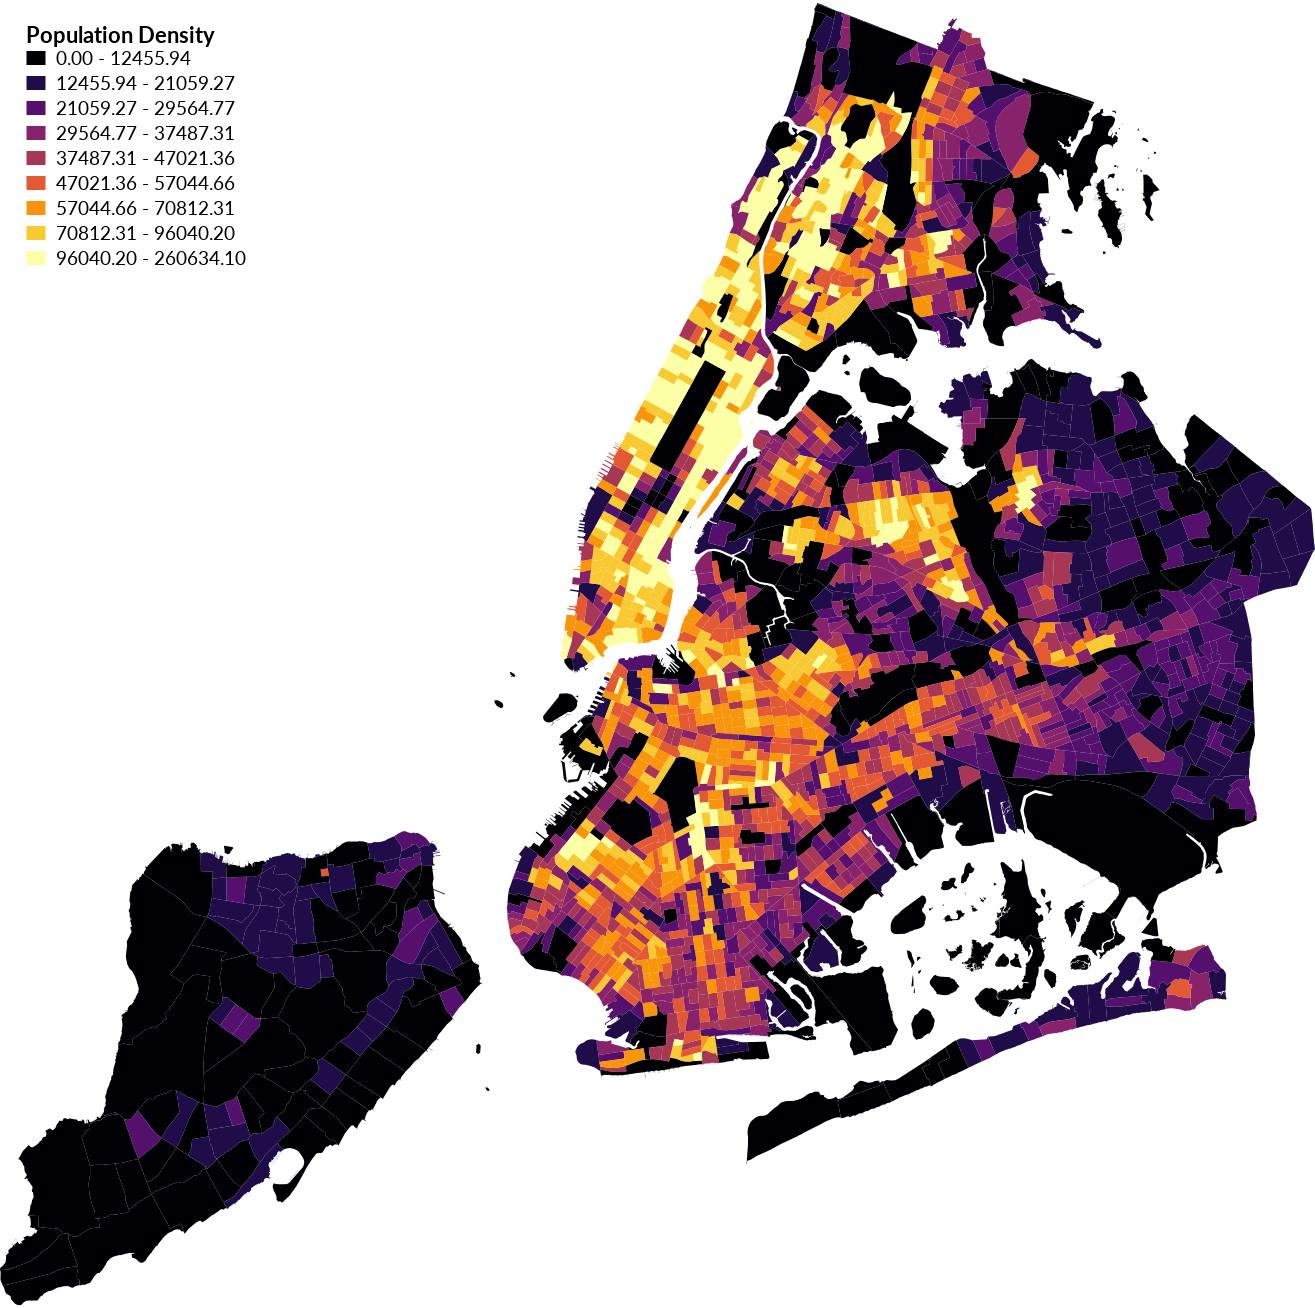 Nyc population density